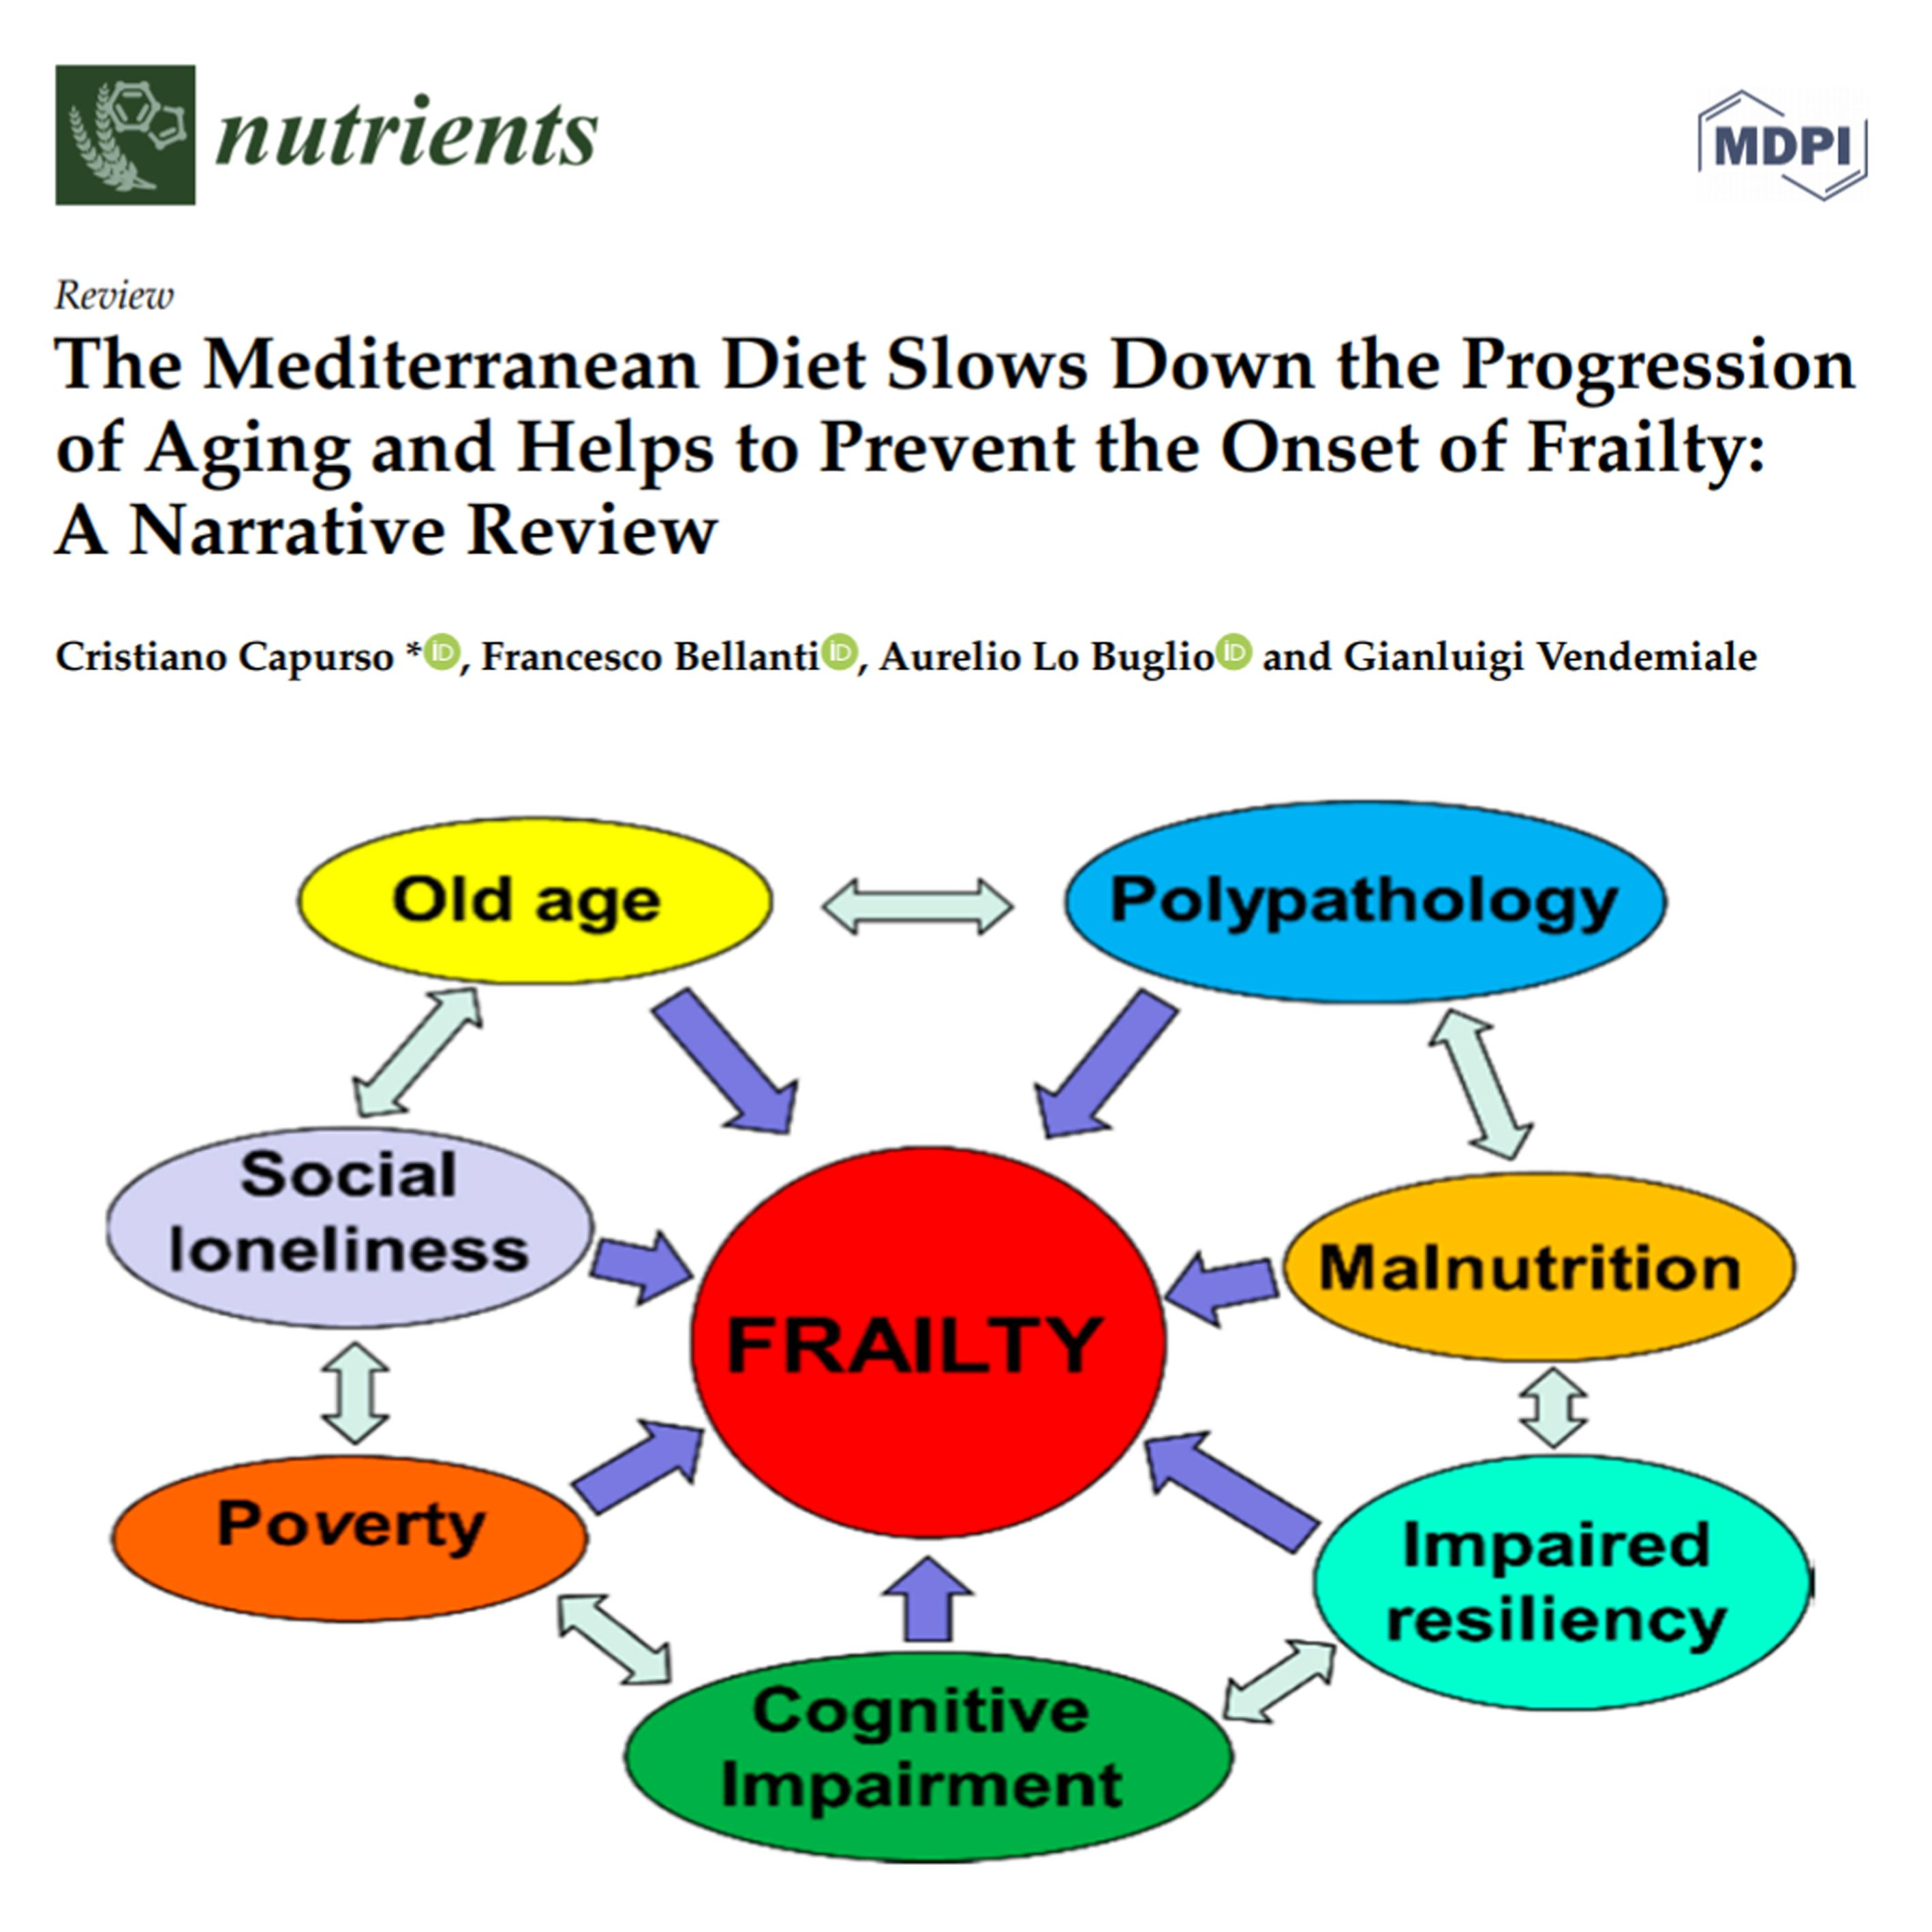 The Mediterranean Diet Slows Down the Progression of Aging